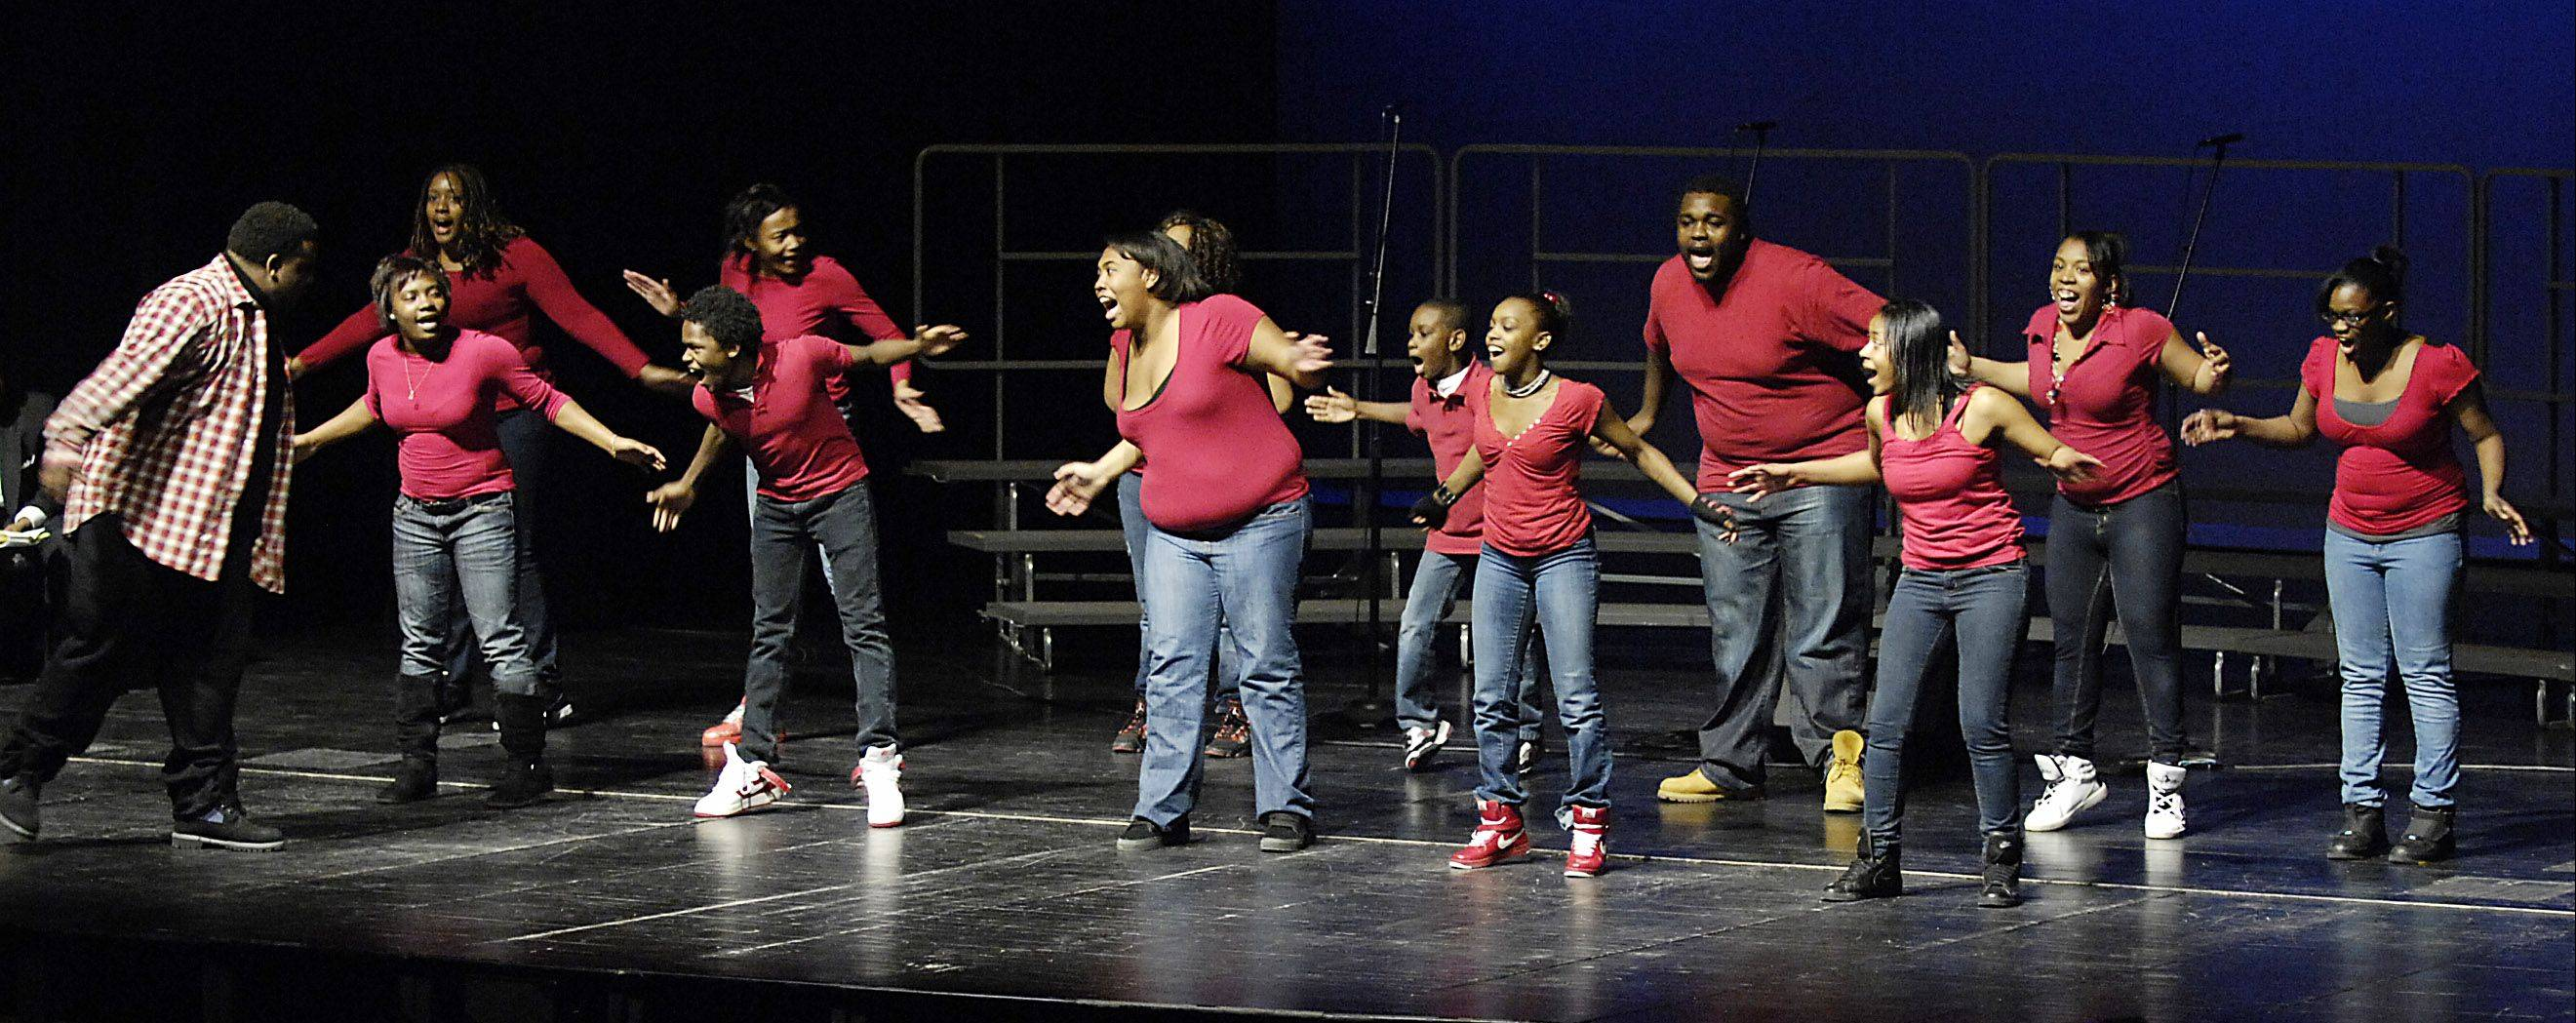 The Citywide Drill Team performs at a previous Martin Luther King Jr. celebration at the Hemmens Cultural Center in Elgin. This Sunday, the city will hold an MLK celebration at 4 p.m. at the Hemmens.